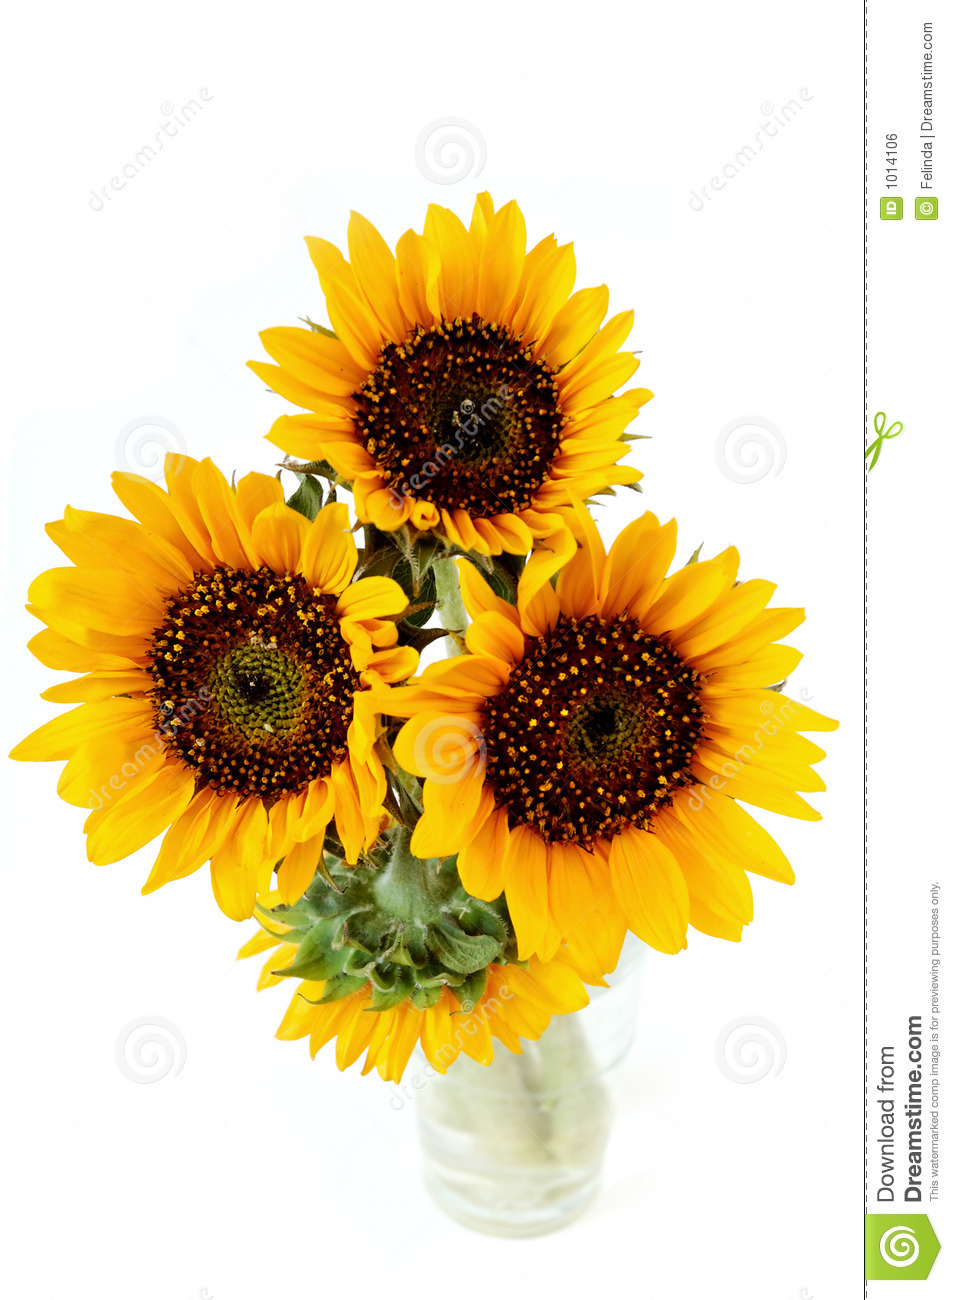 Sunflower Bouquet Clip Art sunflowers in the vase royalty free stock ...